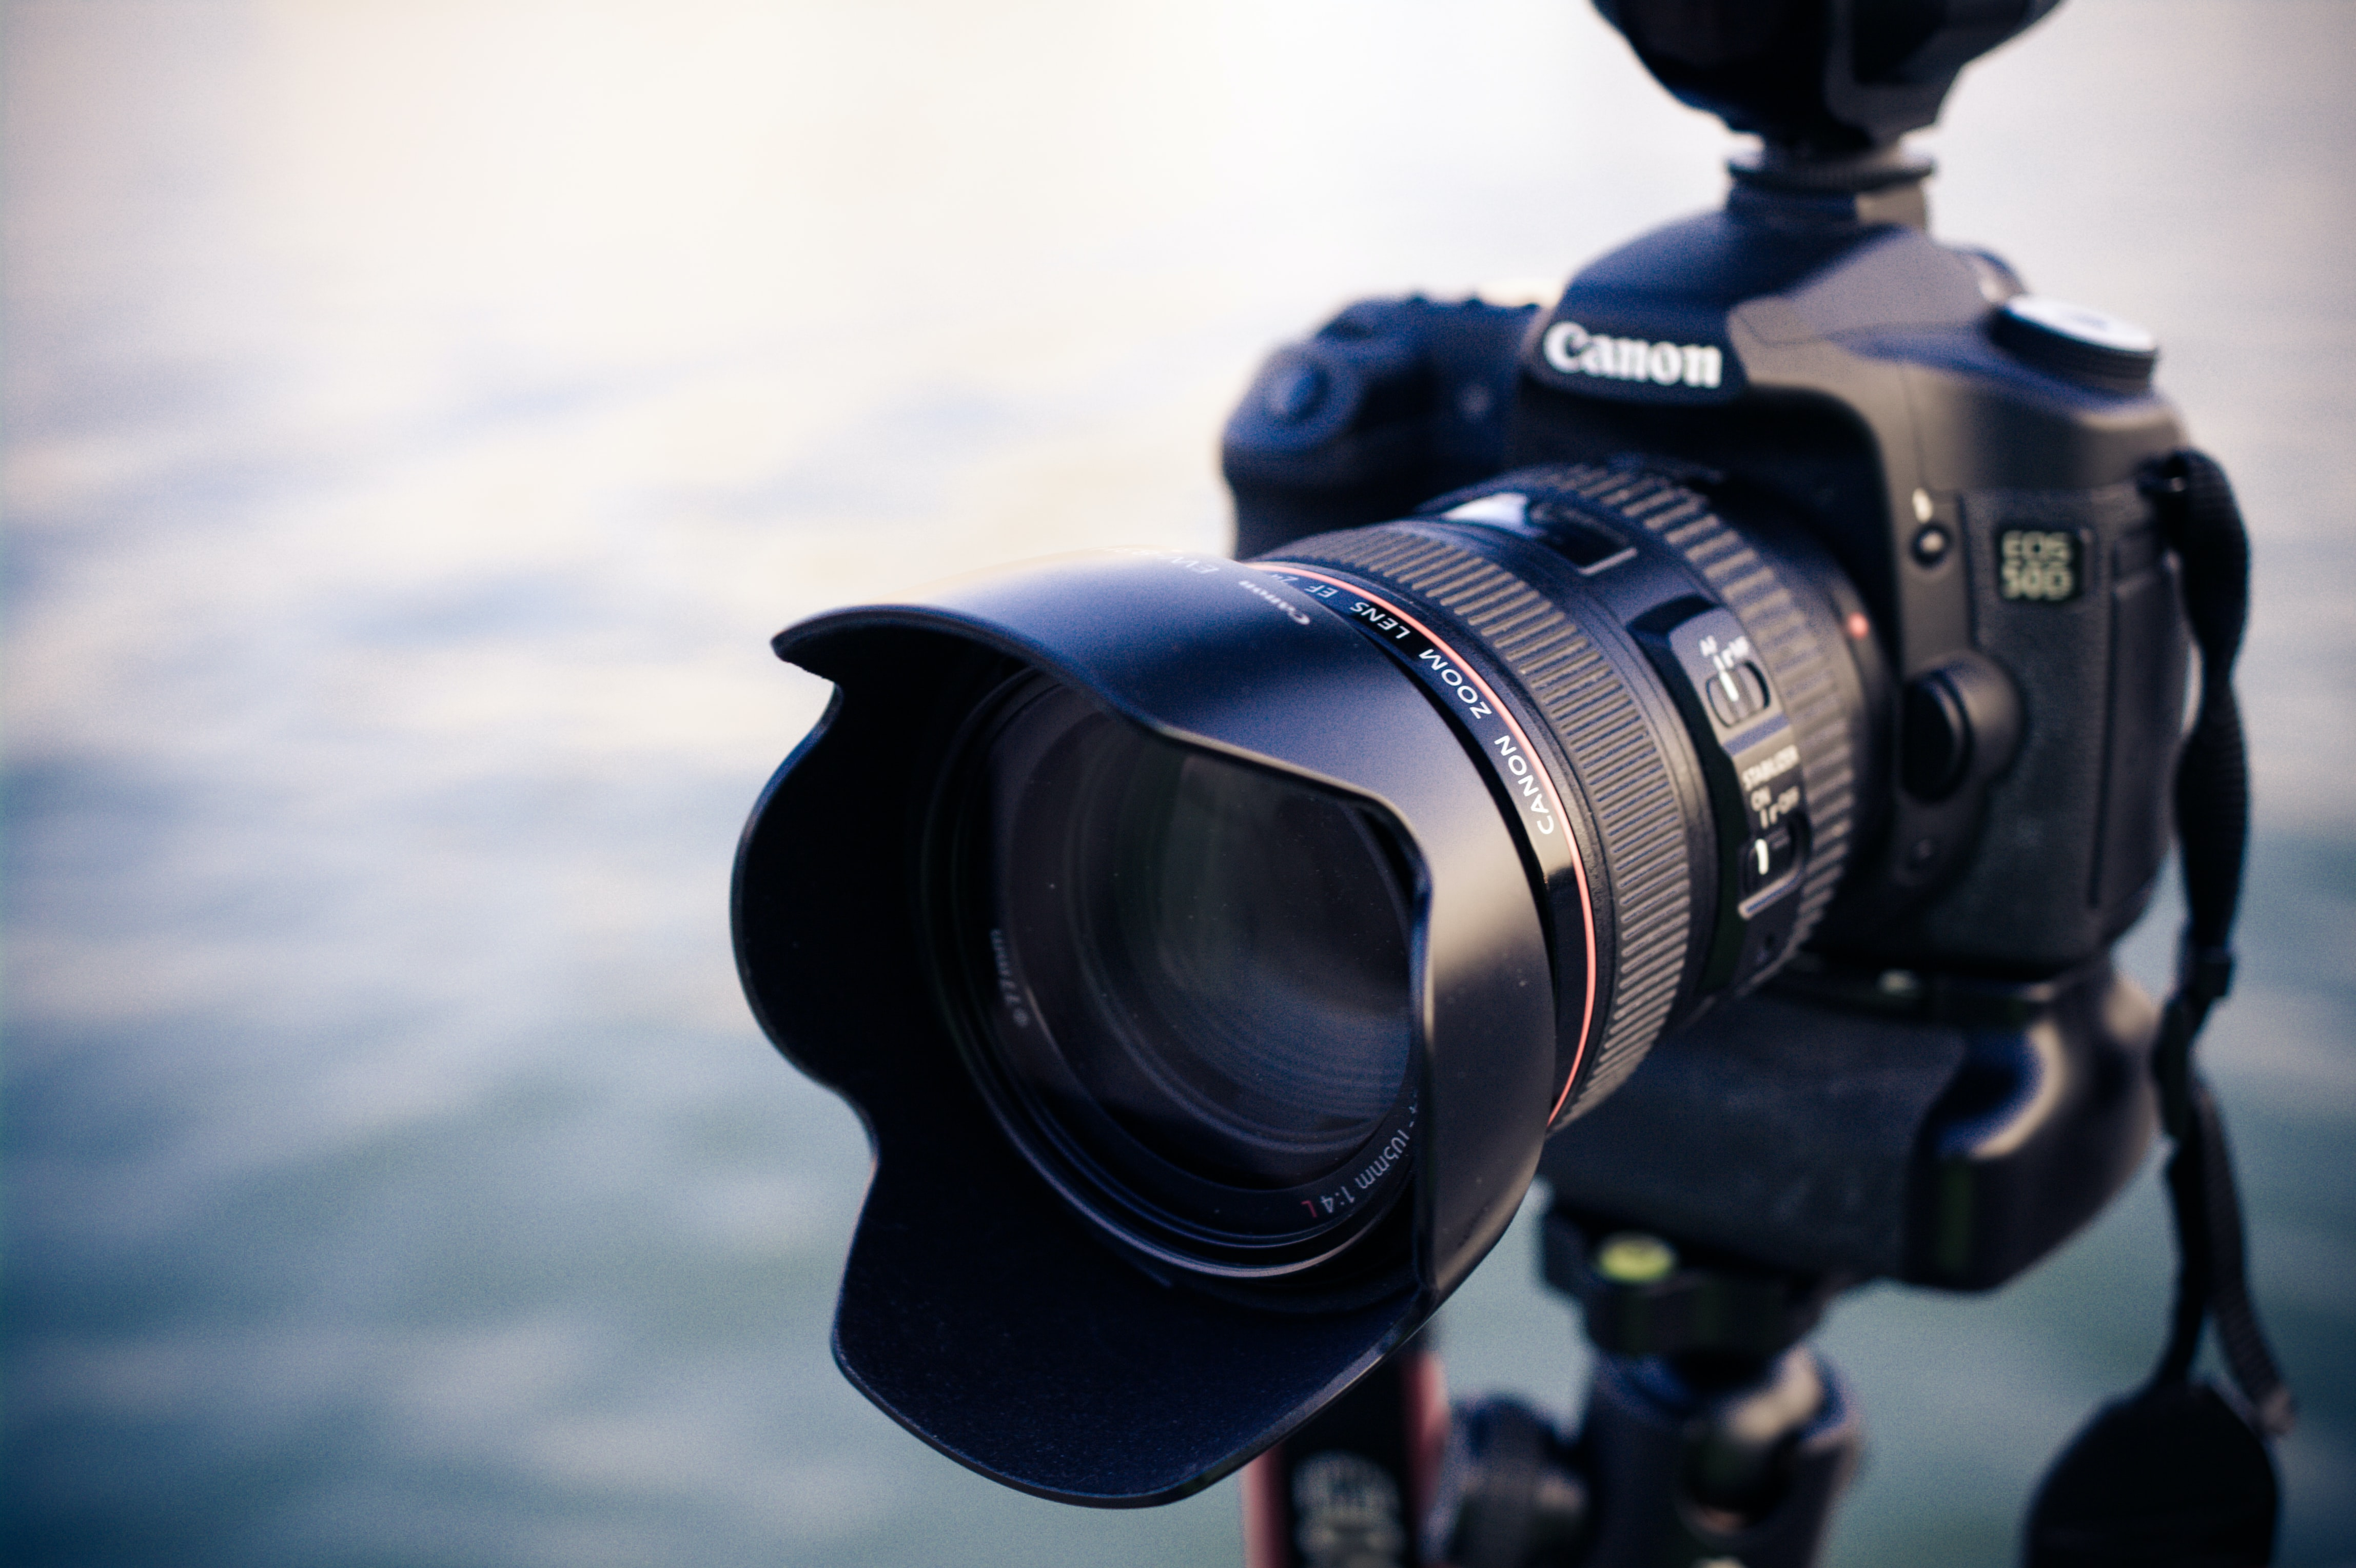 shallow focus photography of black Canon DSLR camera